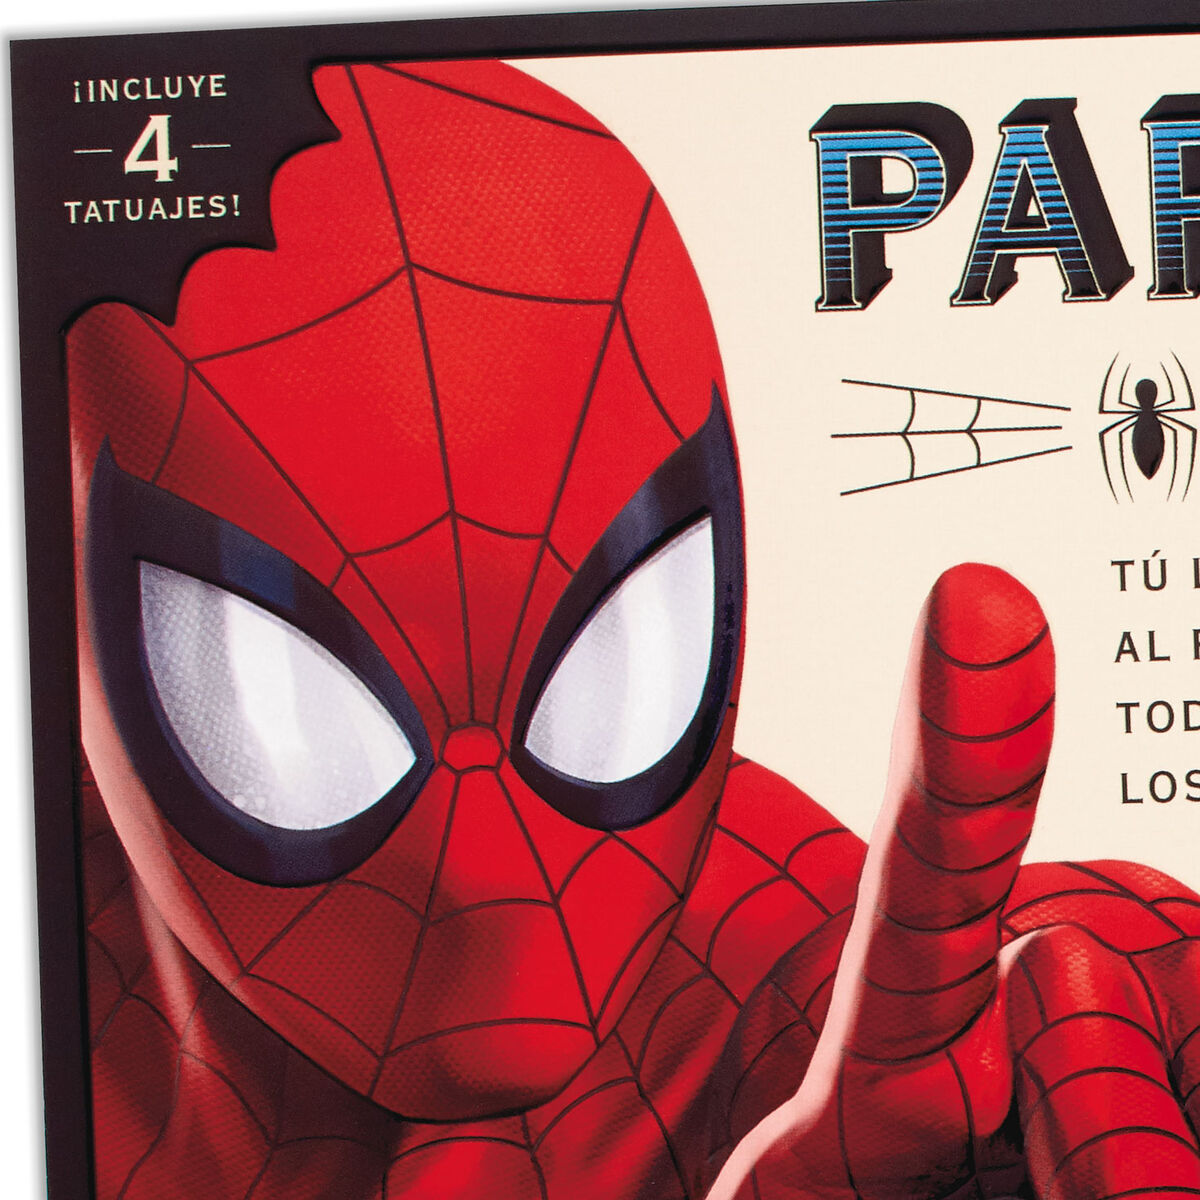 marvel spiderman spanishlanguage father's day card with